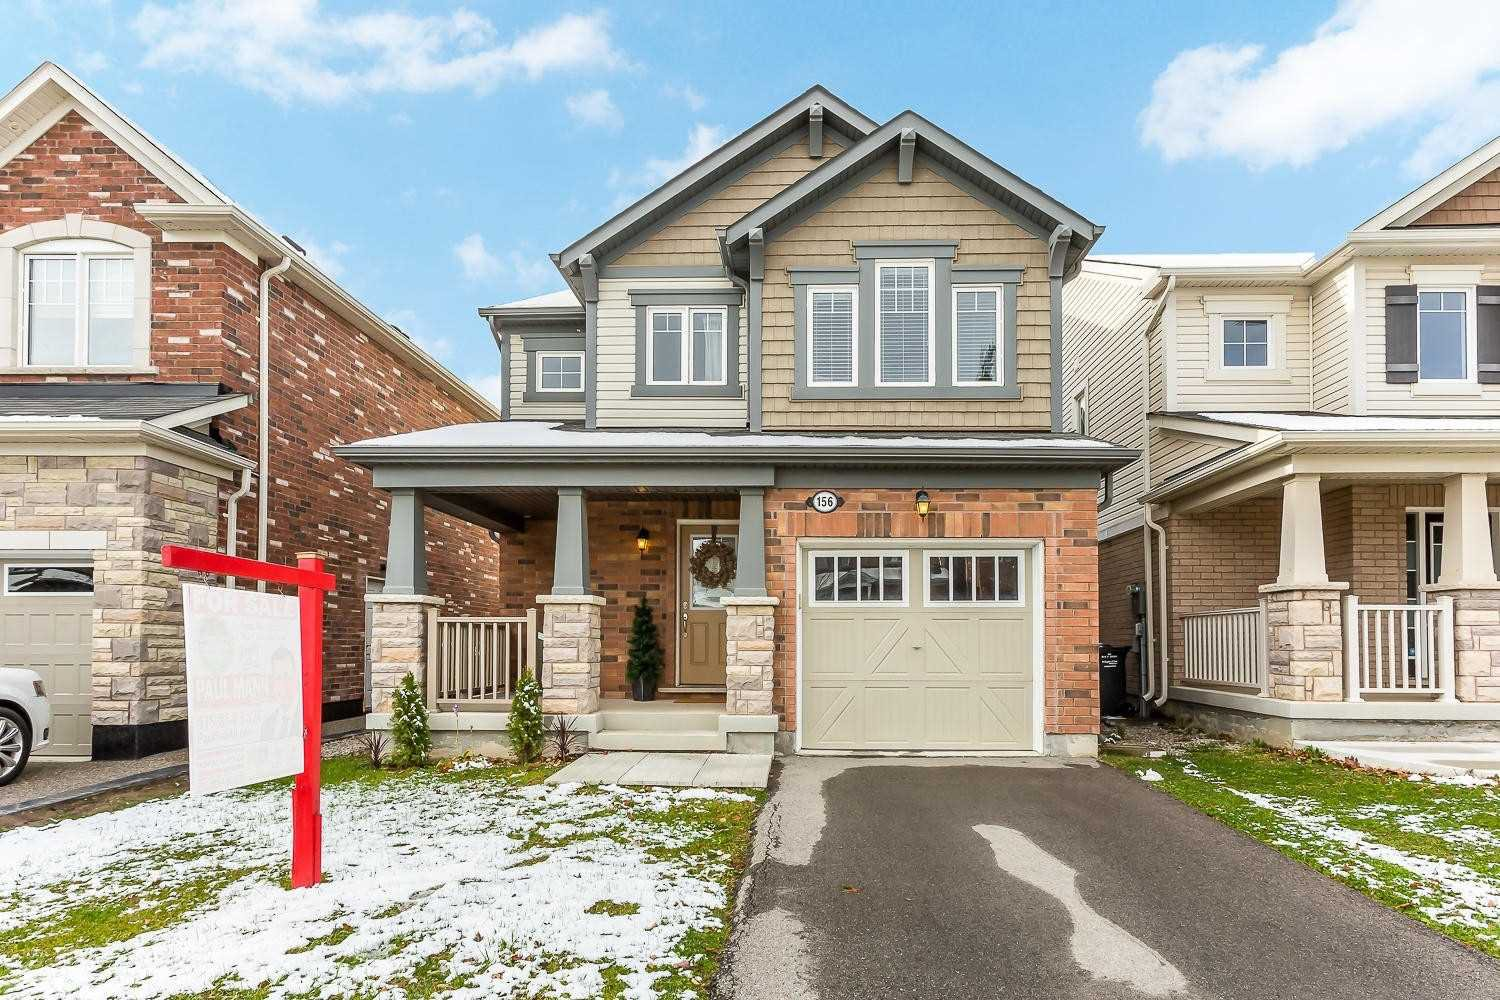 Main Photo: 156 Buick Boulevard in Brampton: Northwest Brampton House (2-Storey) for sale : MLS®# W4633707